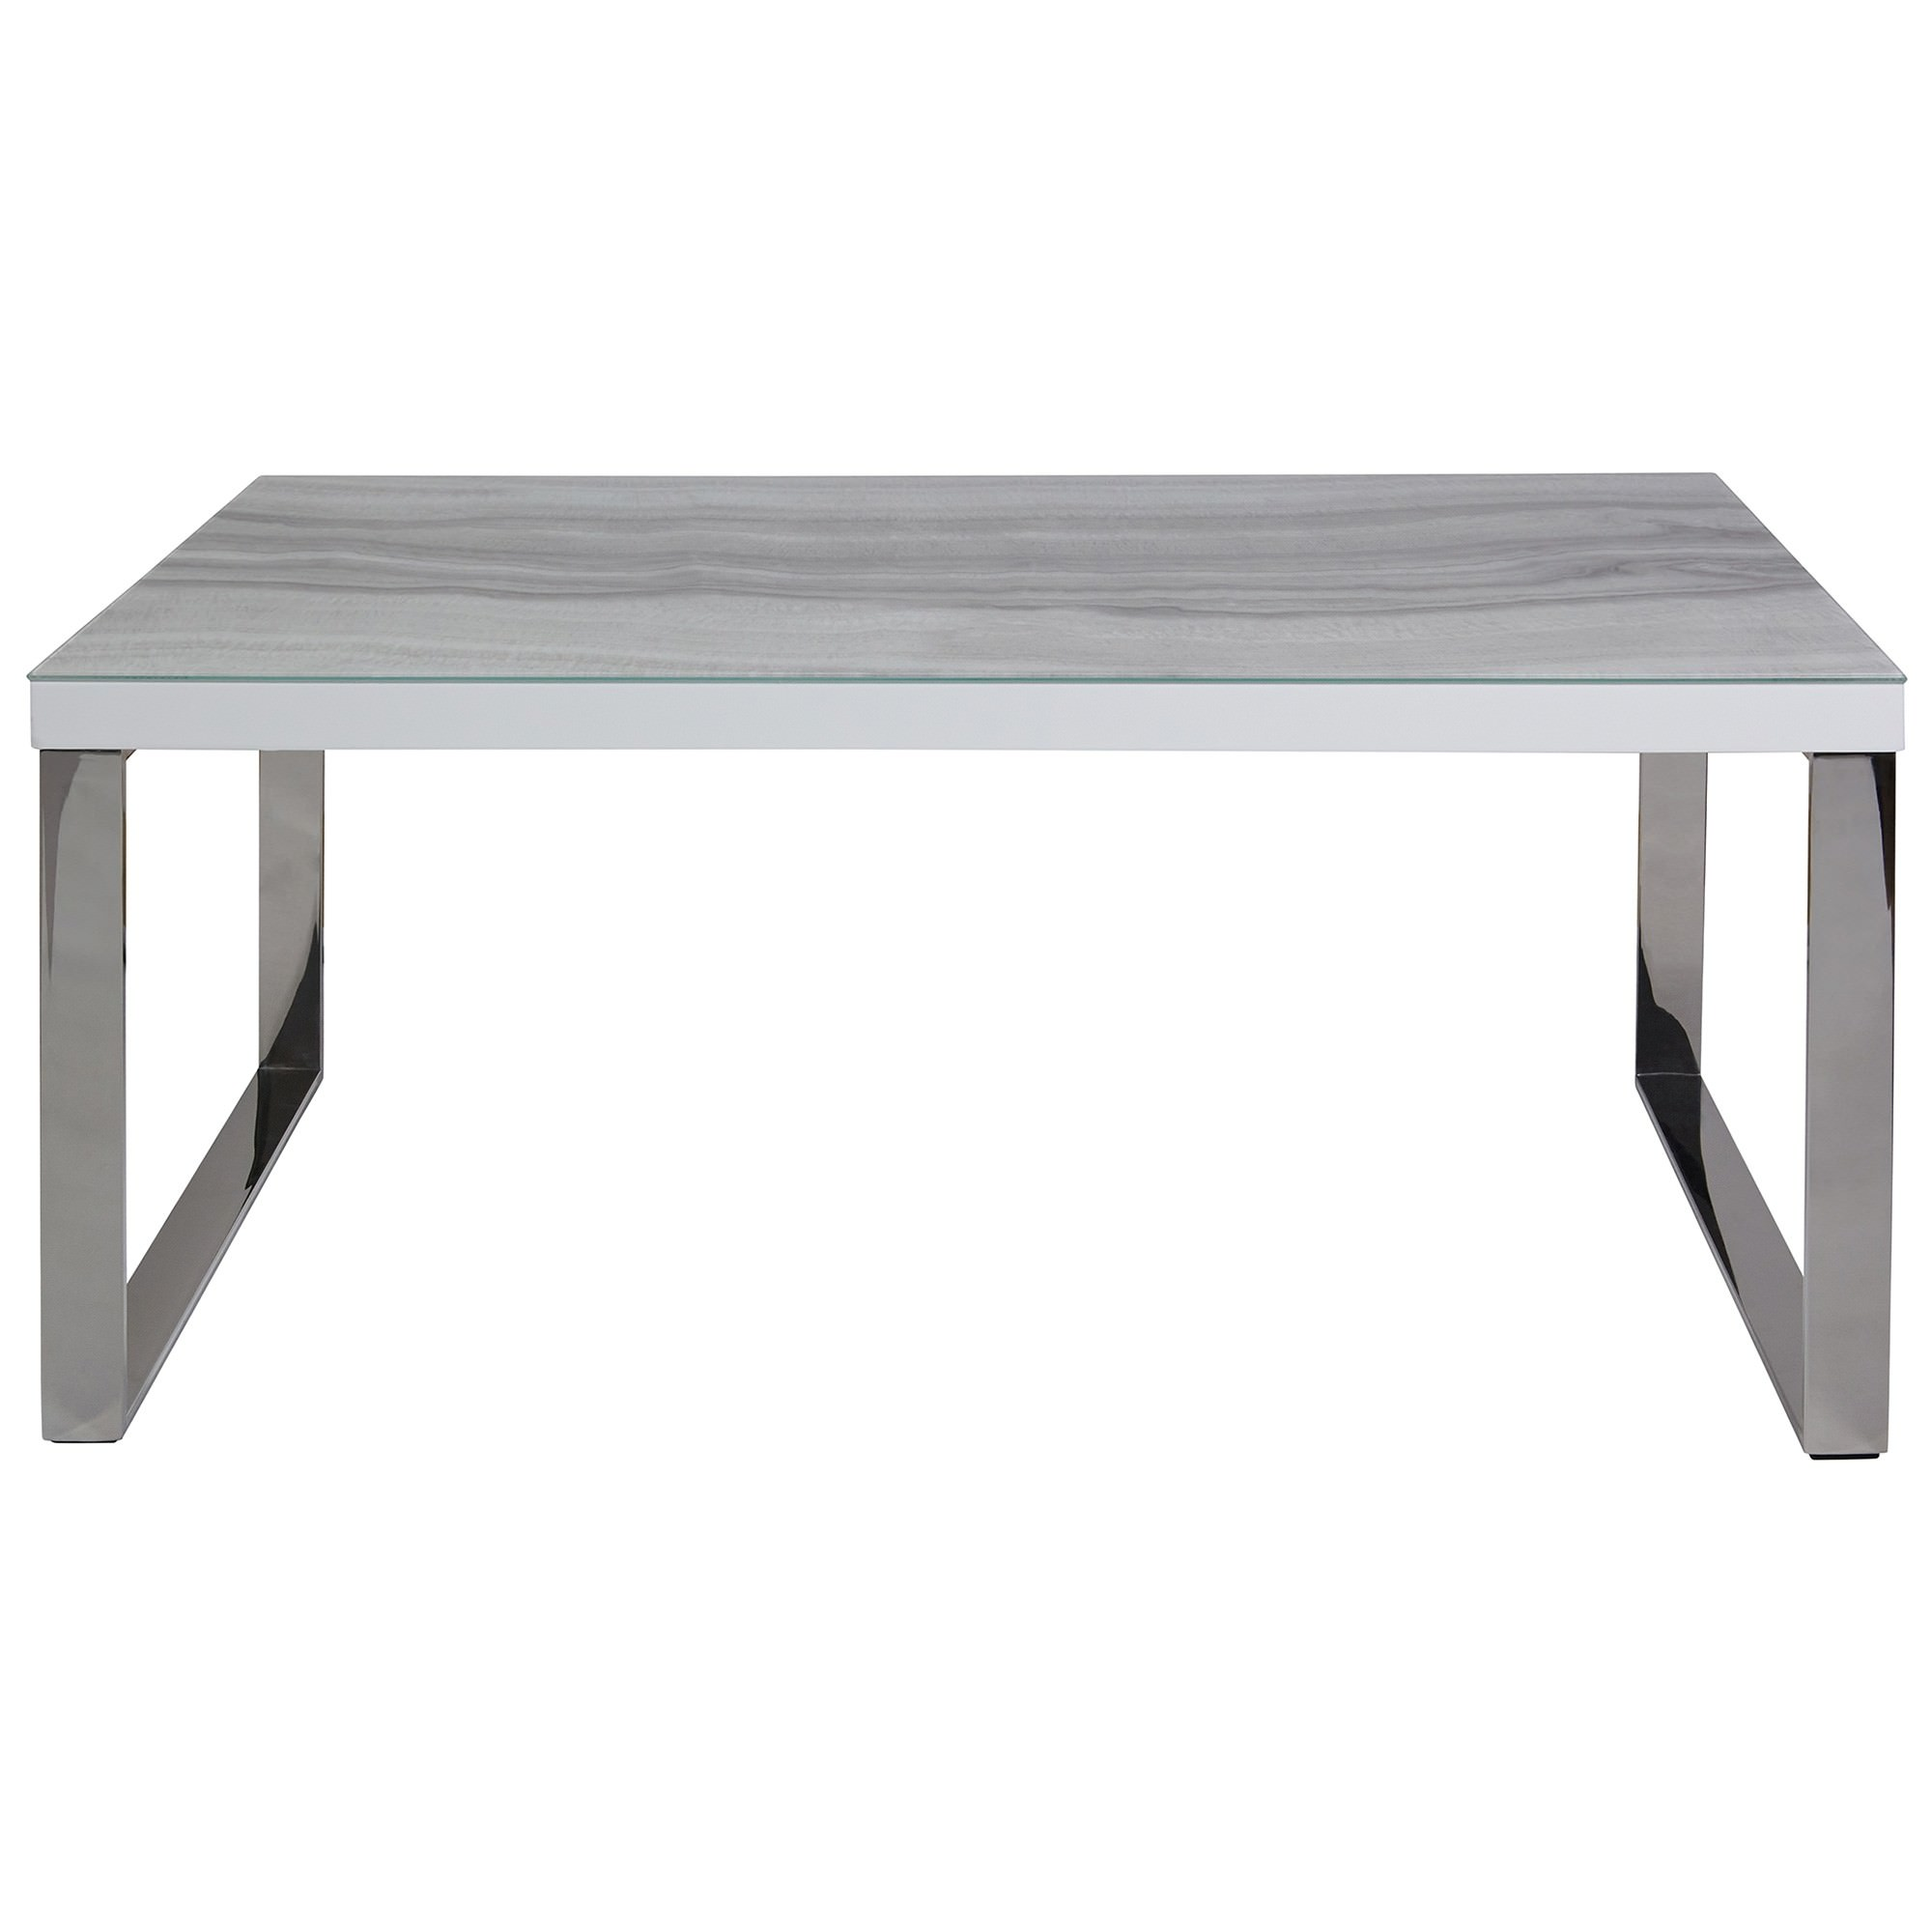 Luna Tempered Glass Topped Coffee Table, 110cm